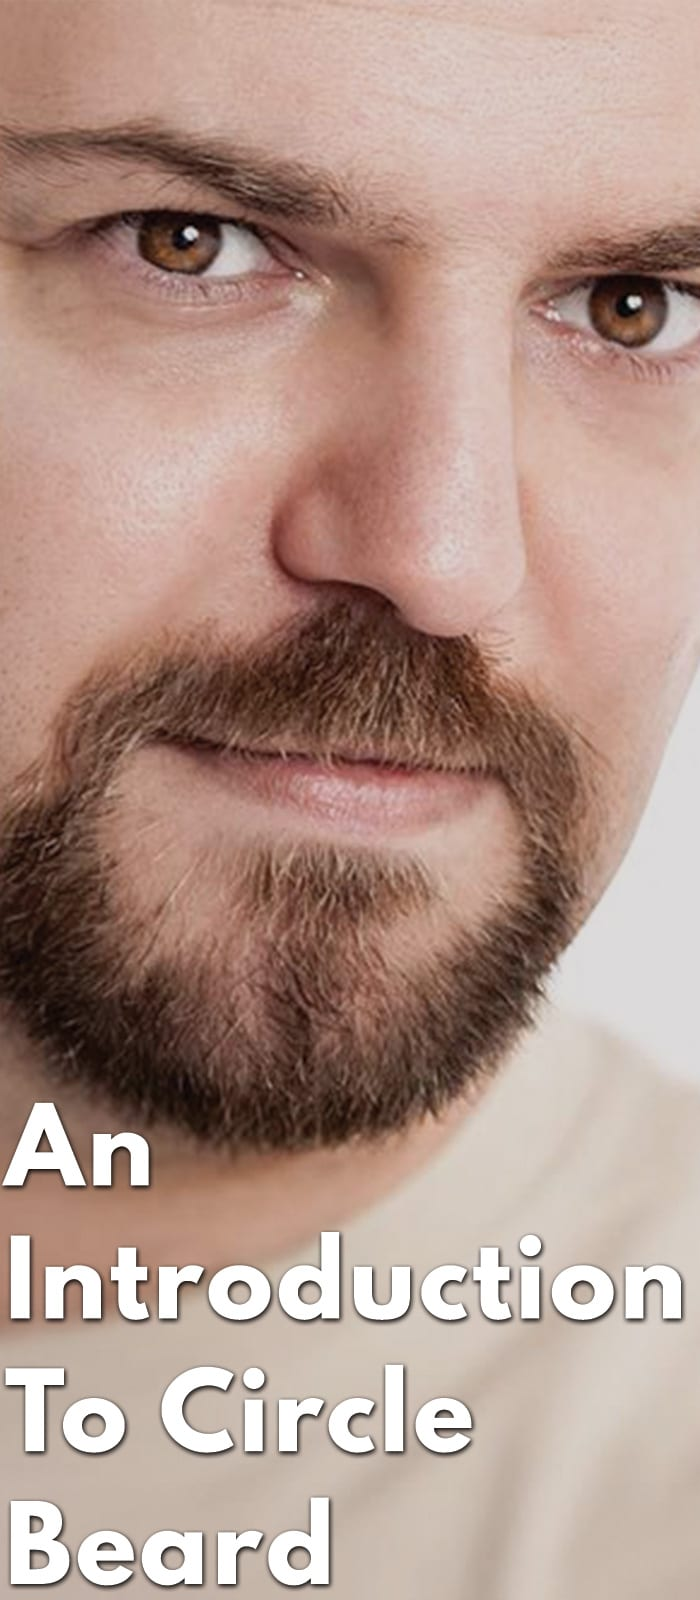 An-Introduction-To-Circle-Beard.